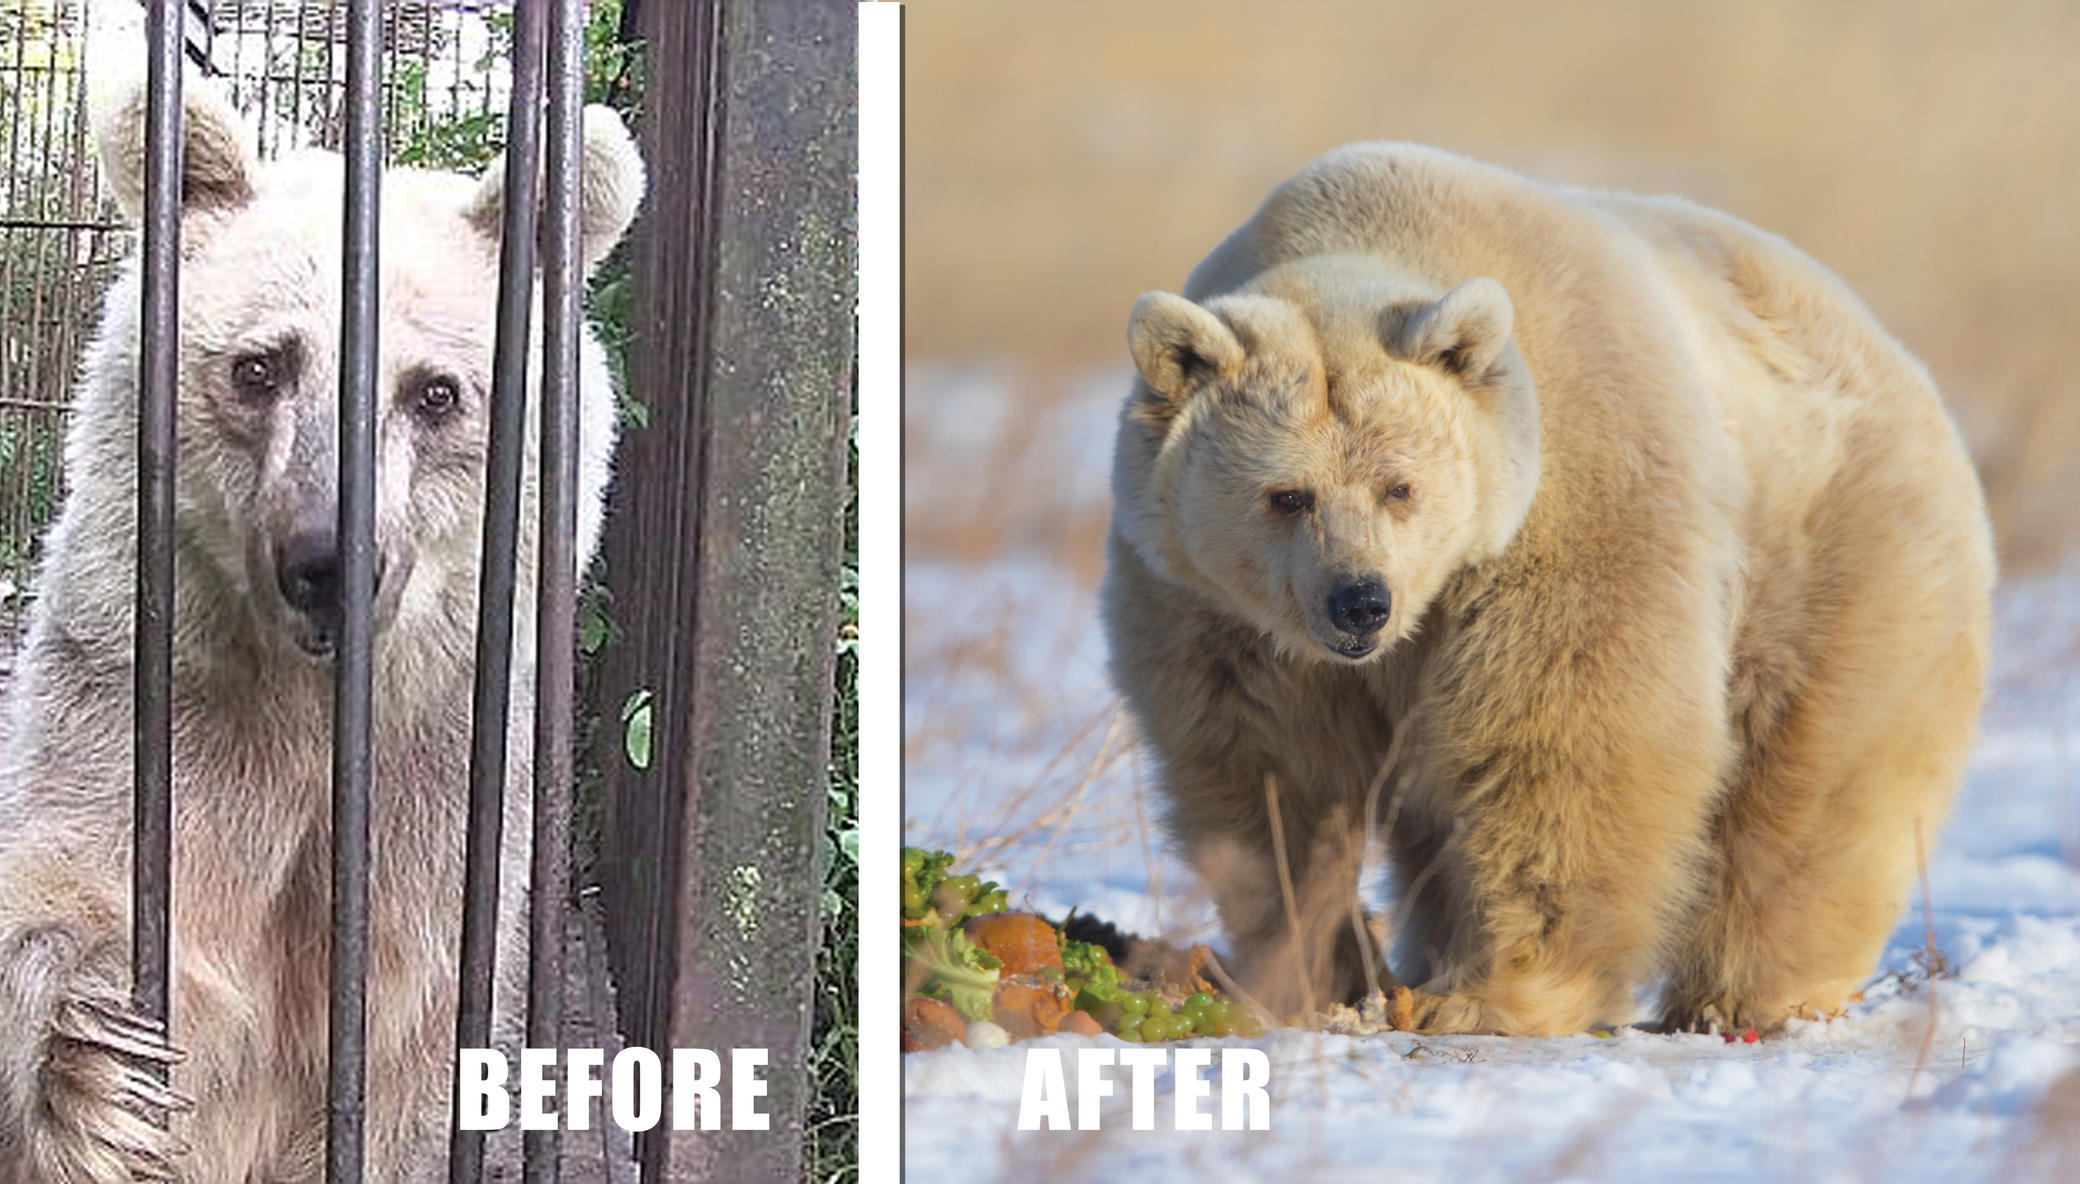 Help Over 520 Rescued Lions, Tigers, & Bears